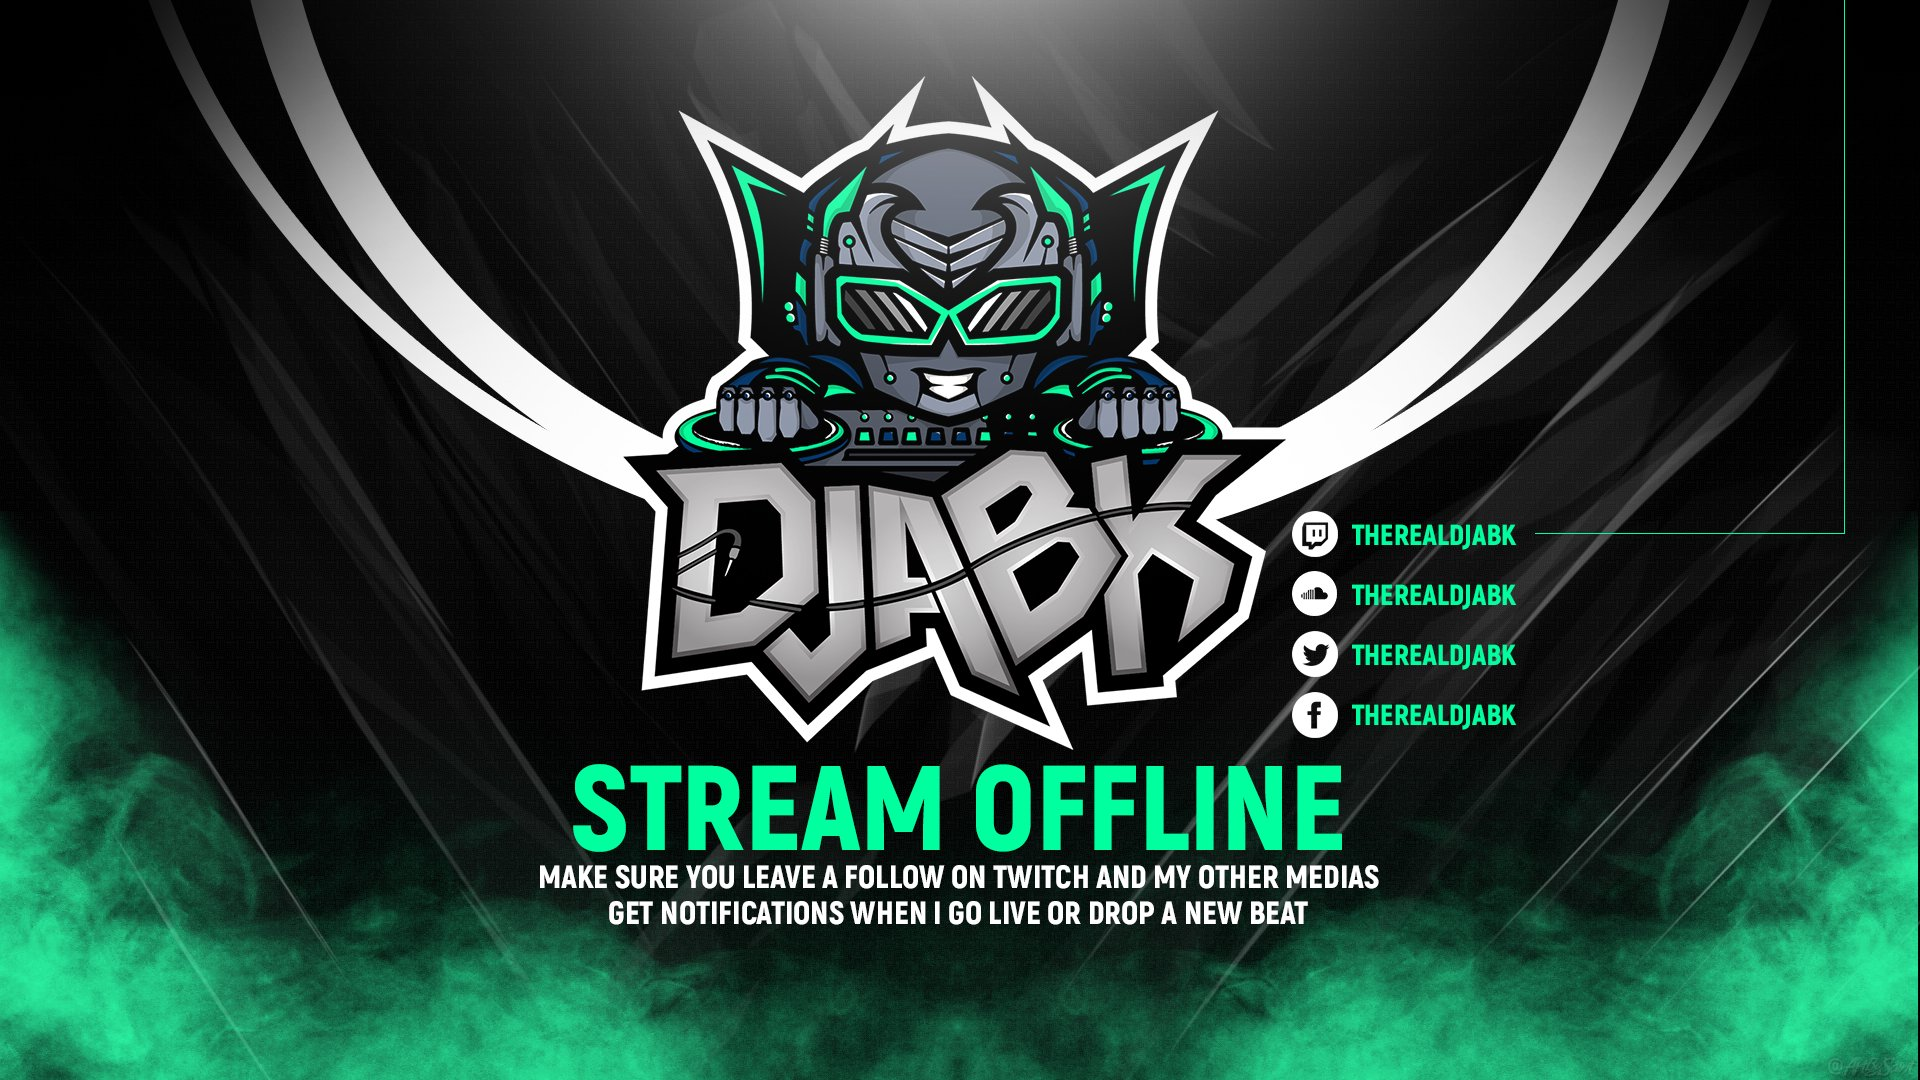 Twitch stream of TheRealDJABK